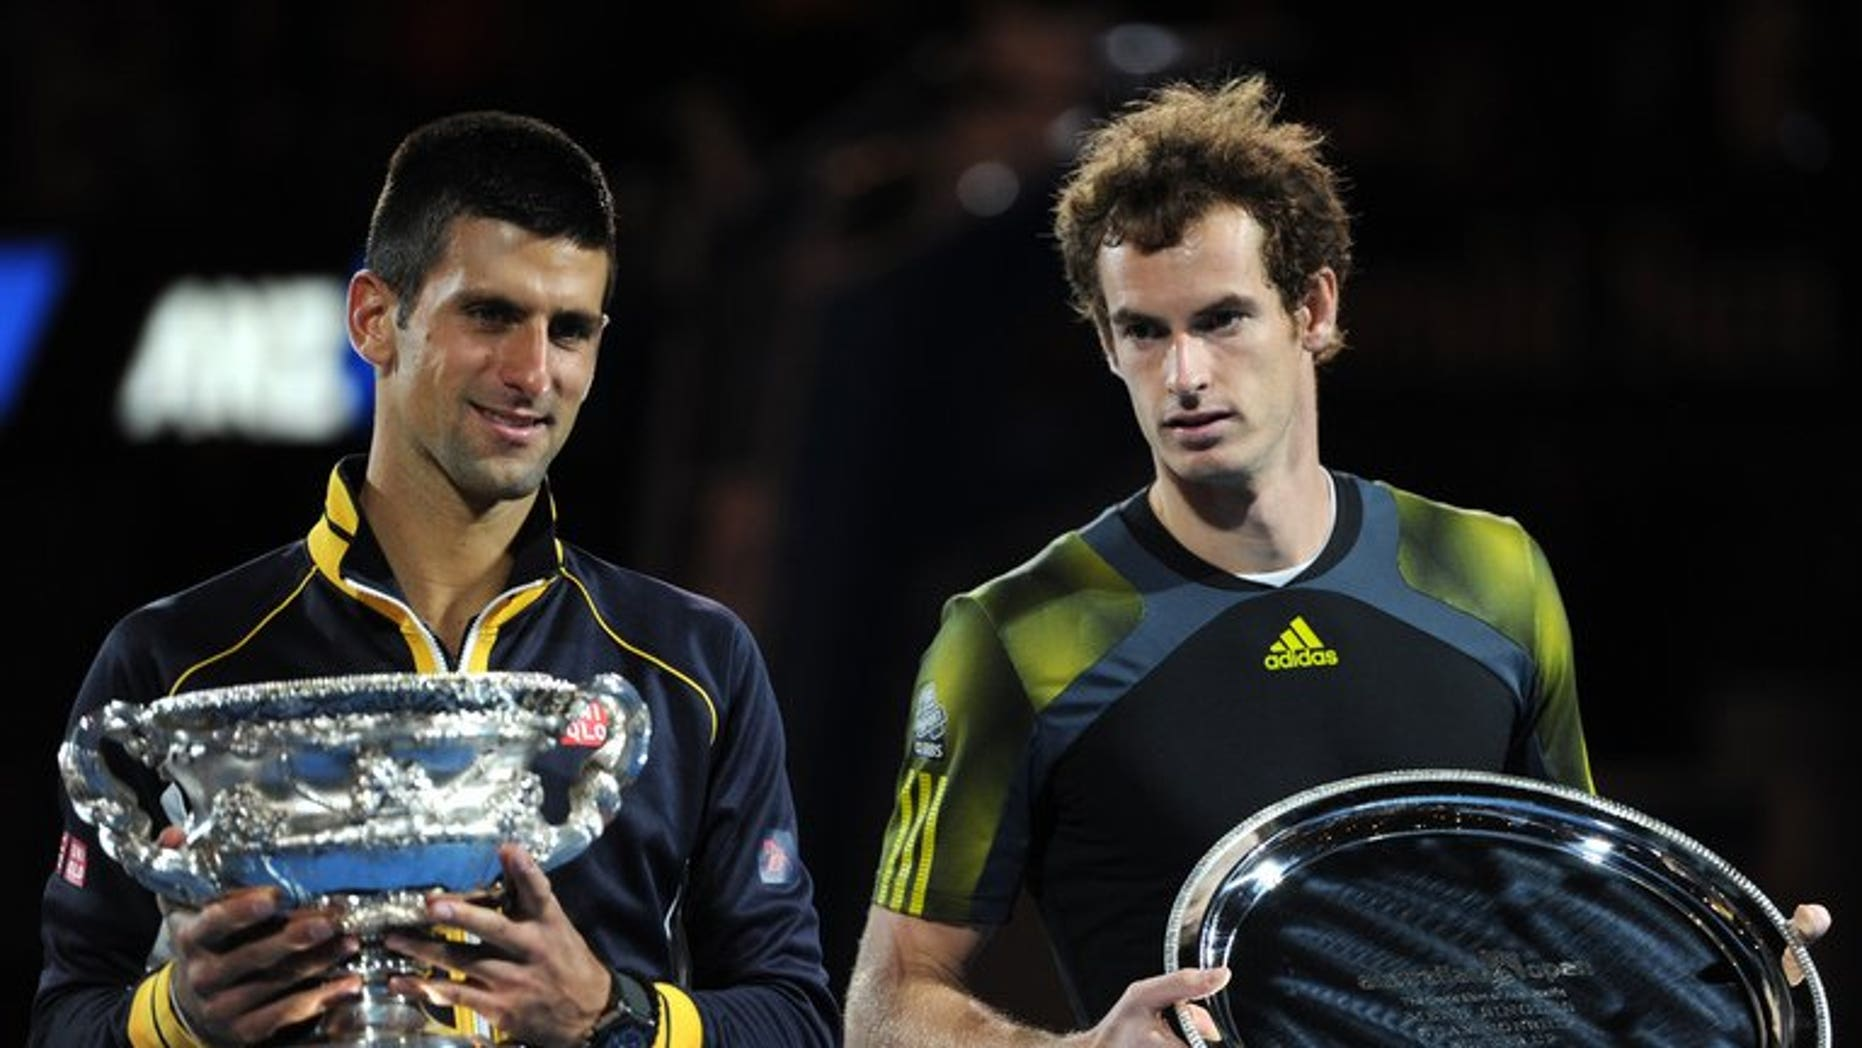 Noval Djokovic (left) and Andy Murray after the Australian Open final in Melbourne in January. Penpix of Novak Djokovic and Andy Murray who contest the Wimbledon men's final at the All England Club on Sunday.